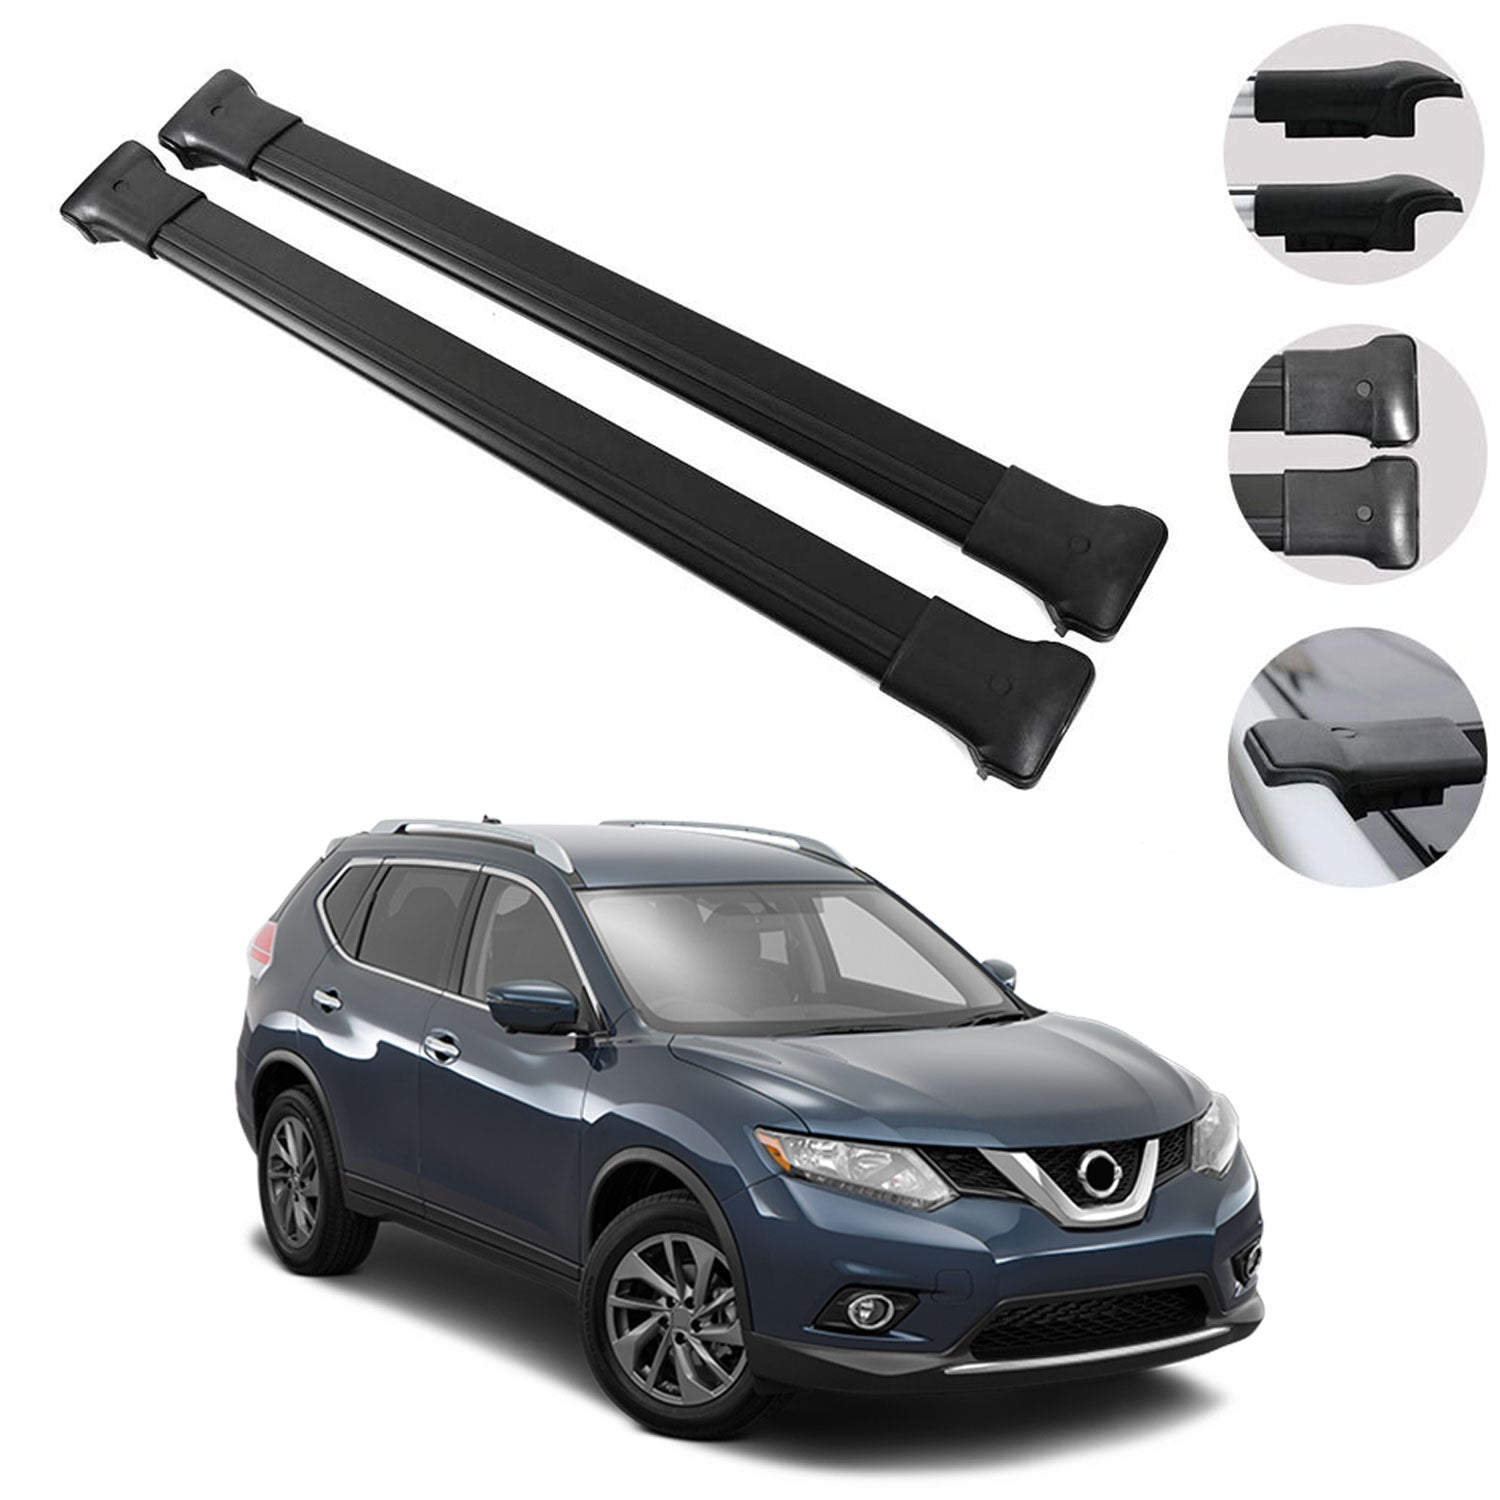 Roof Rack Cross Bars Luggage Carrier Black 2 Pieces For Nissan Rogue 2 Omac Shop Usa Auto Accessories